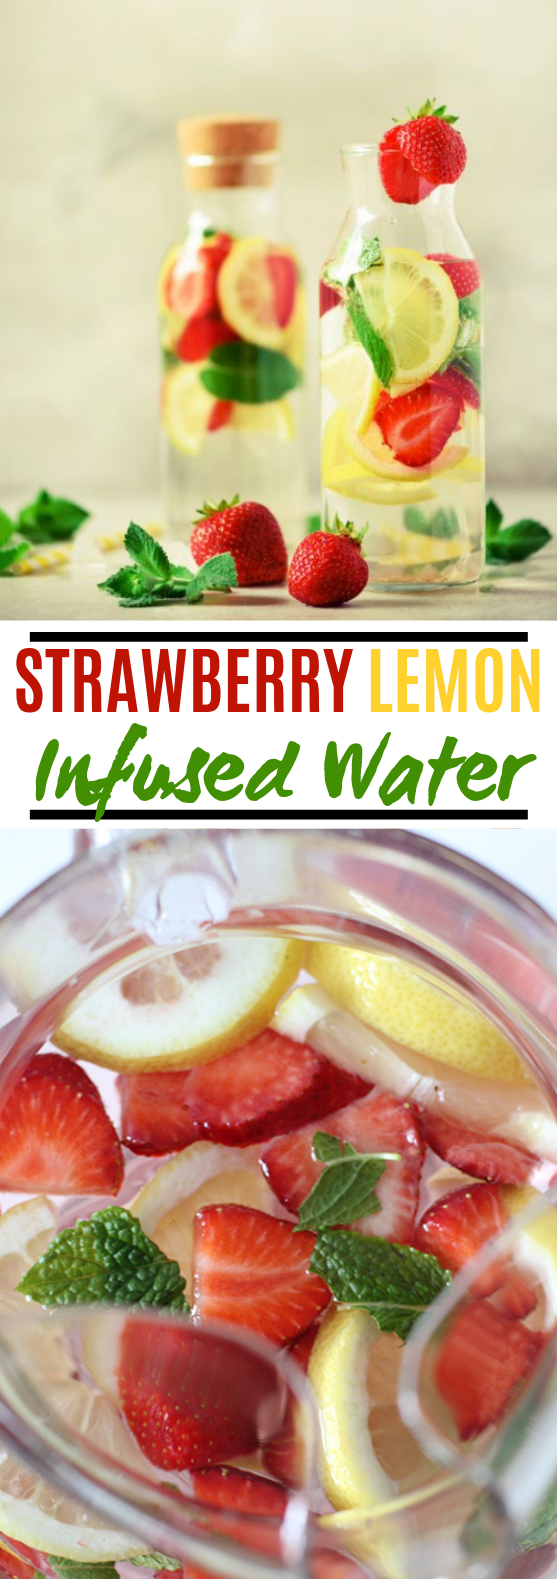 Strawberry Lemon Infused Water #drinks #healthy